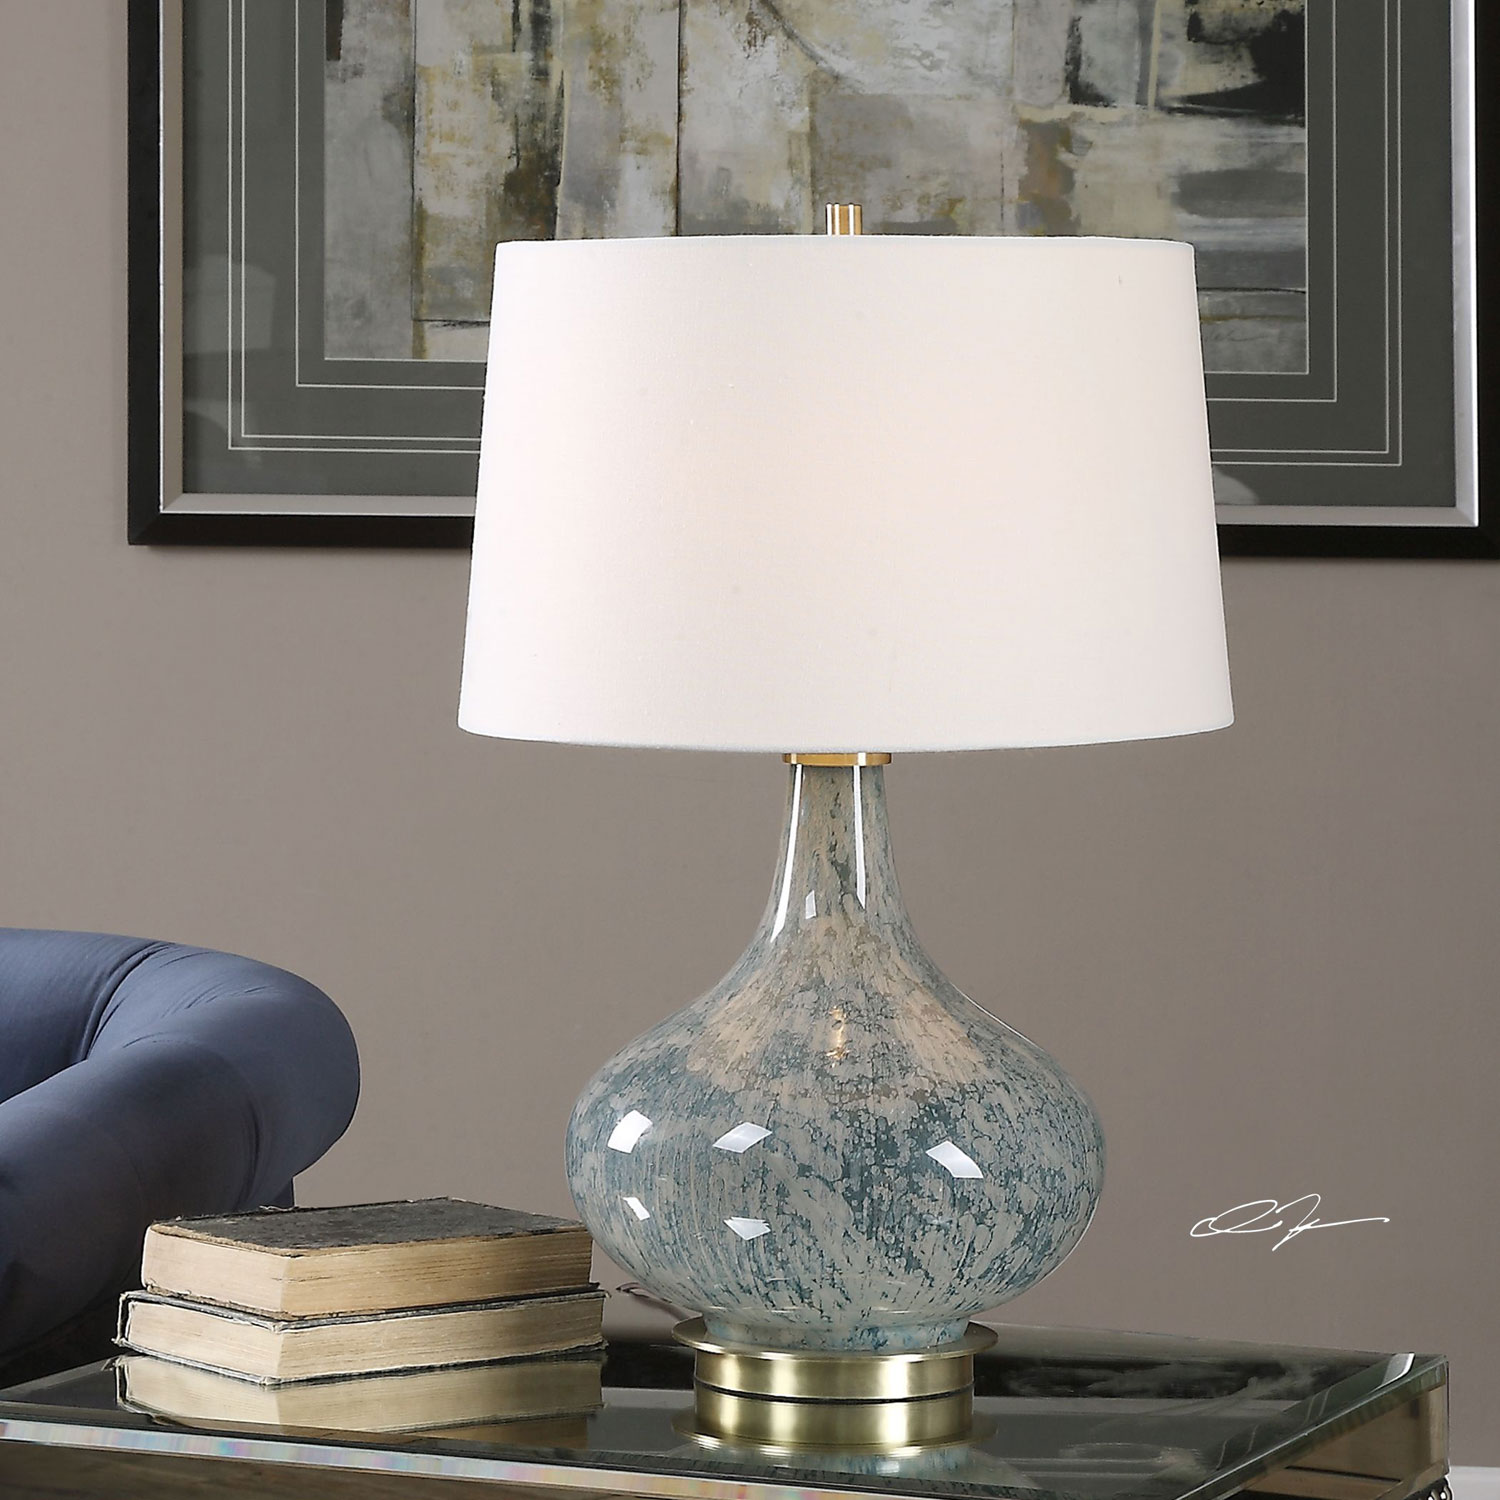 uttermost celinda blue gray one light table lamp bellacor accent lamps contemporary hover zoom small black side cool retro furniture display cabinet west elm pillar leather chairs